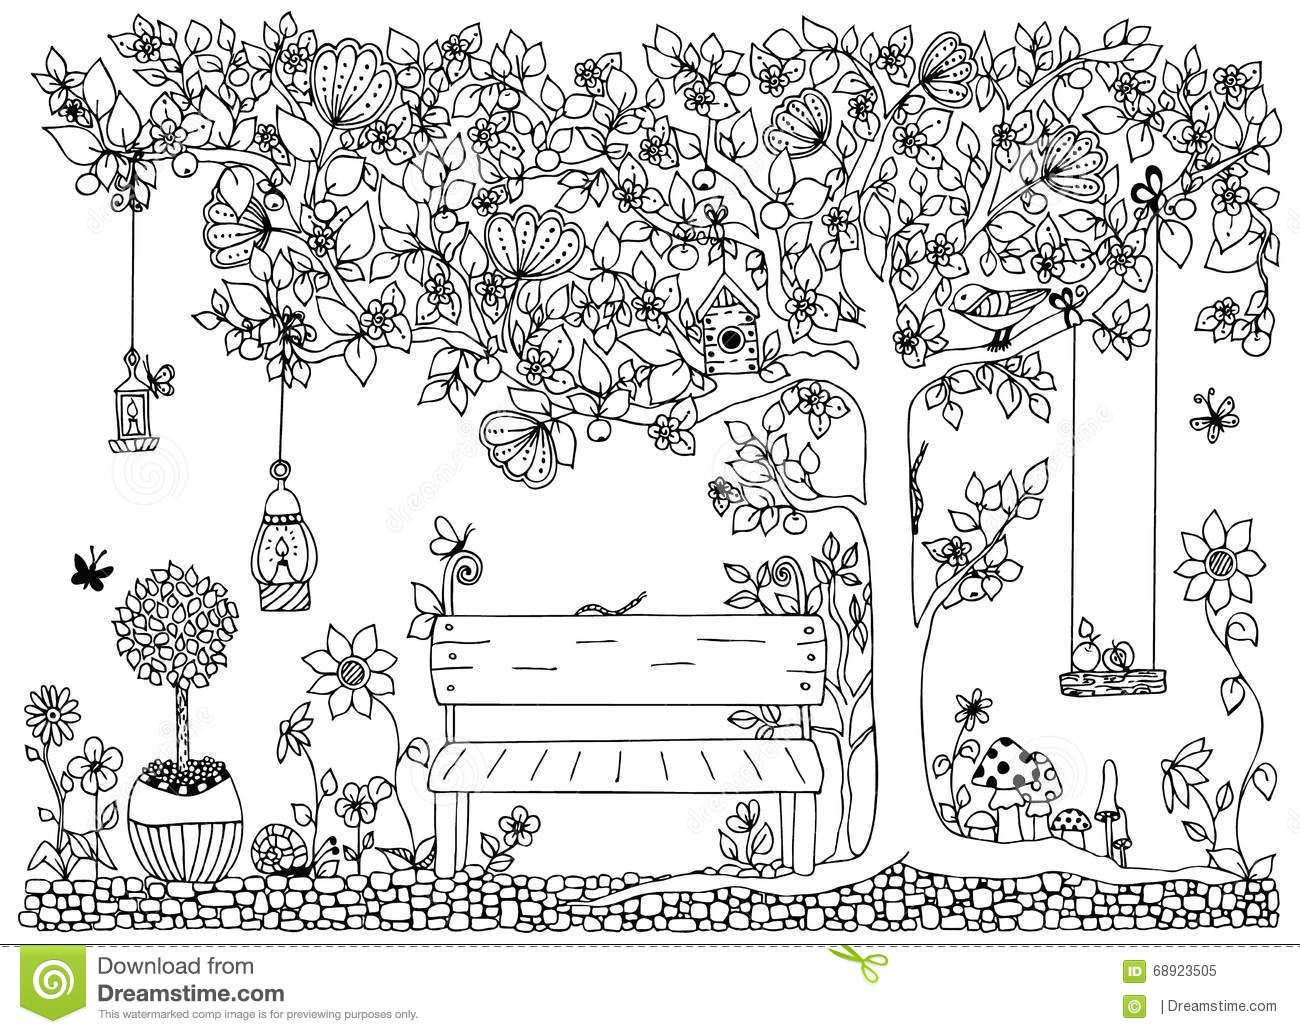 Vector Illustration Zentangle Park Garden Spring Bench A Tree With Apples